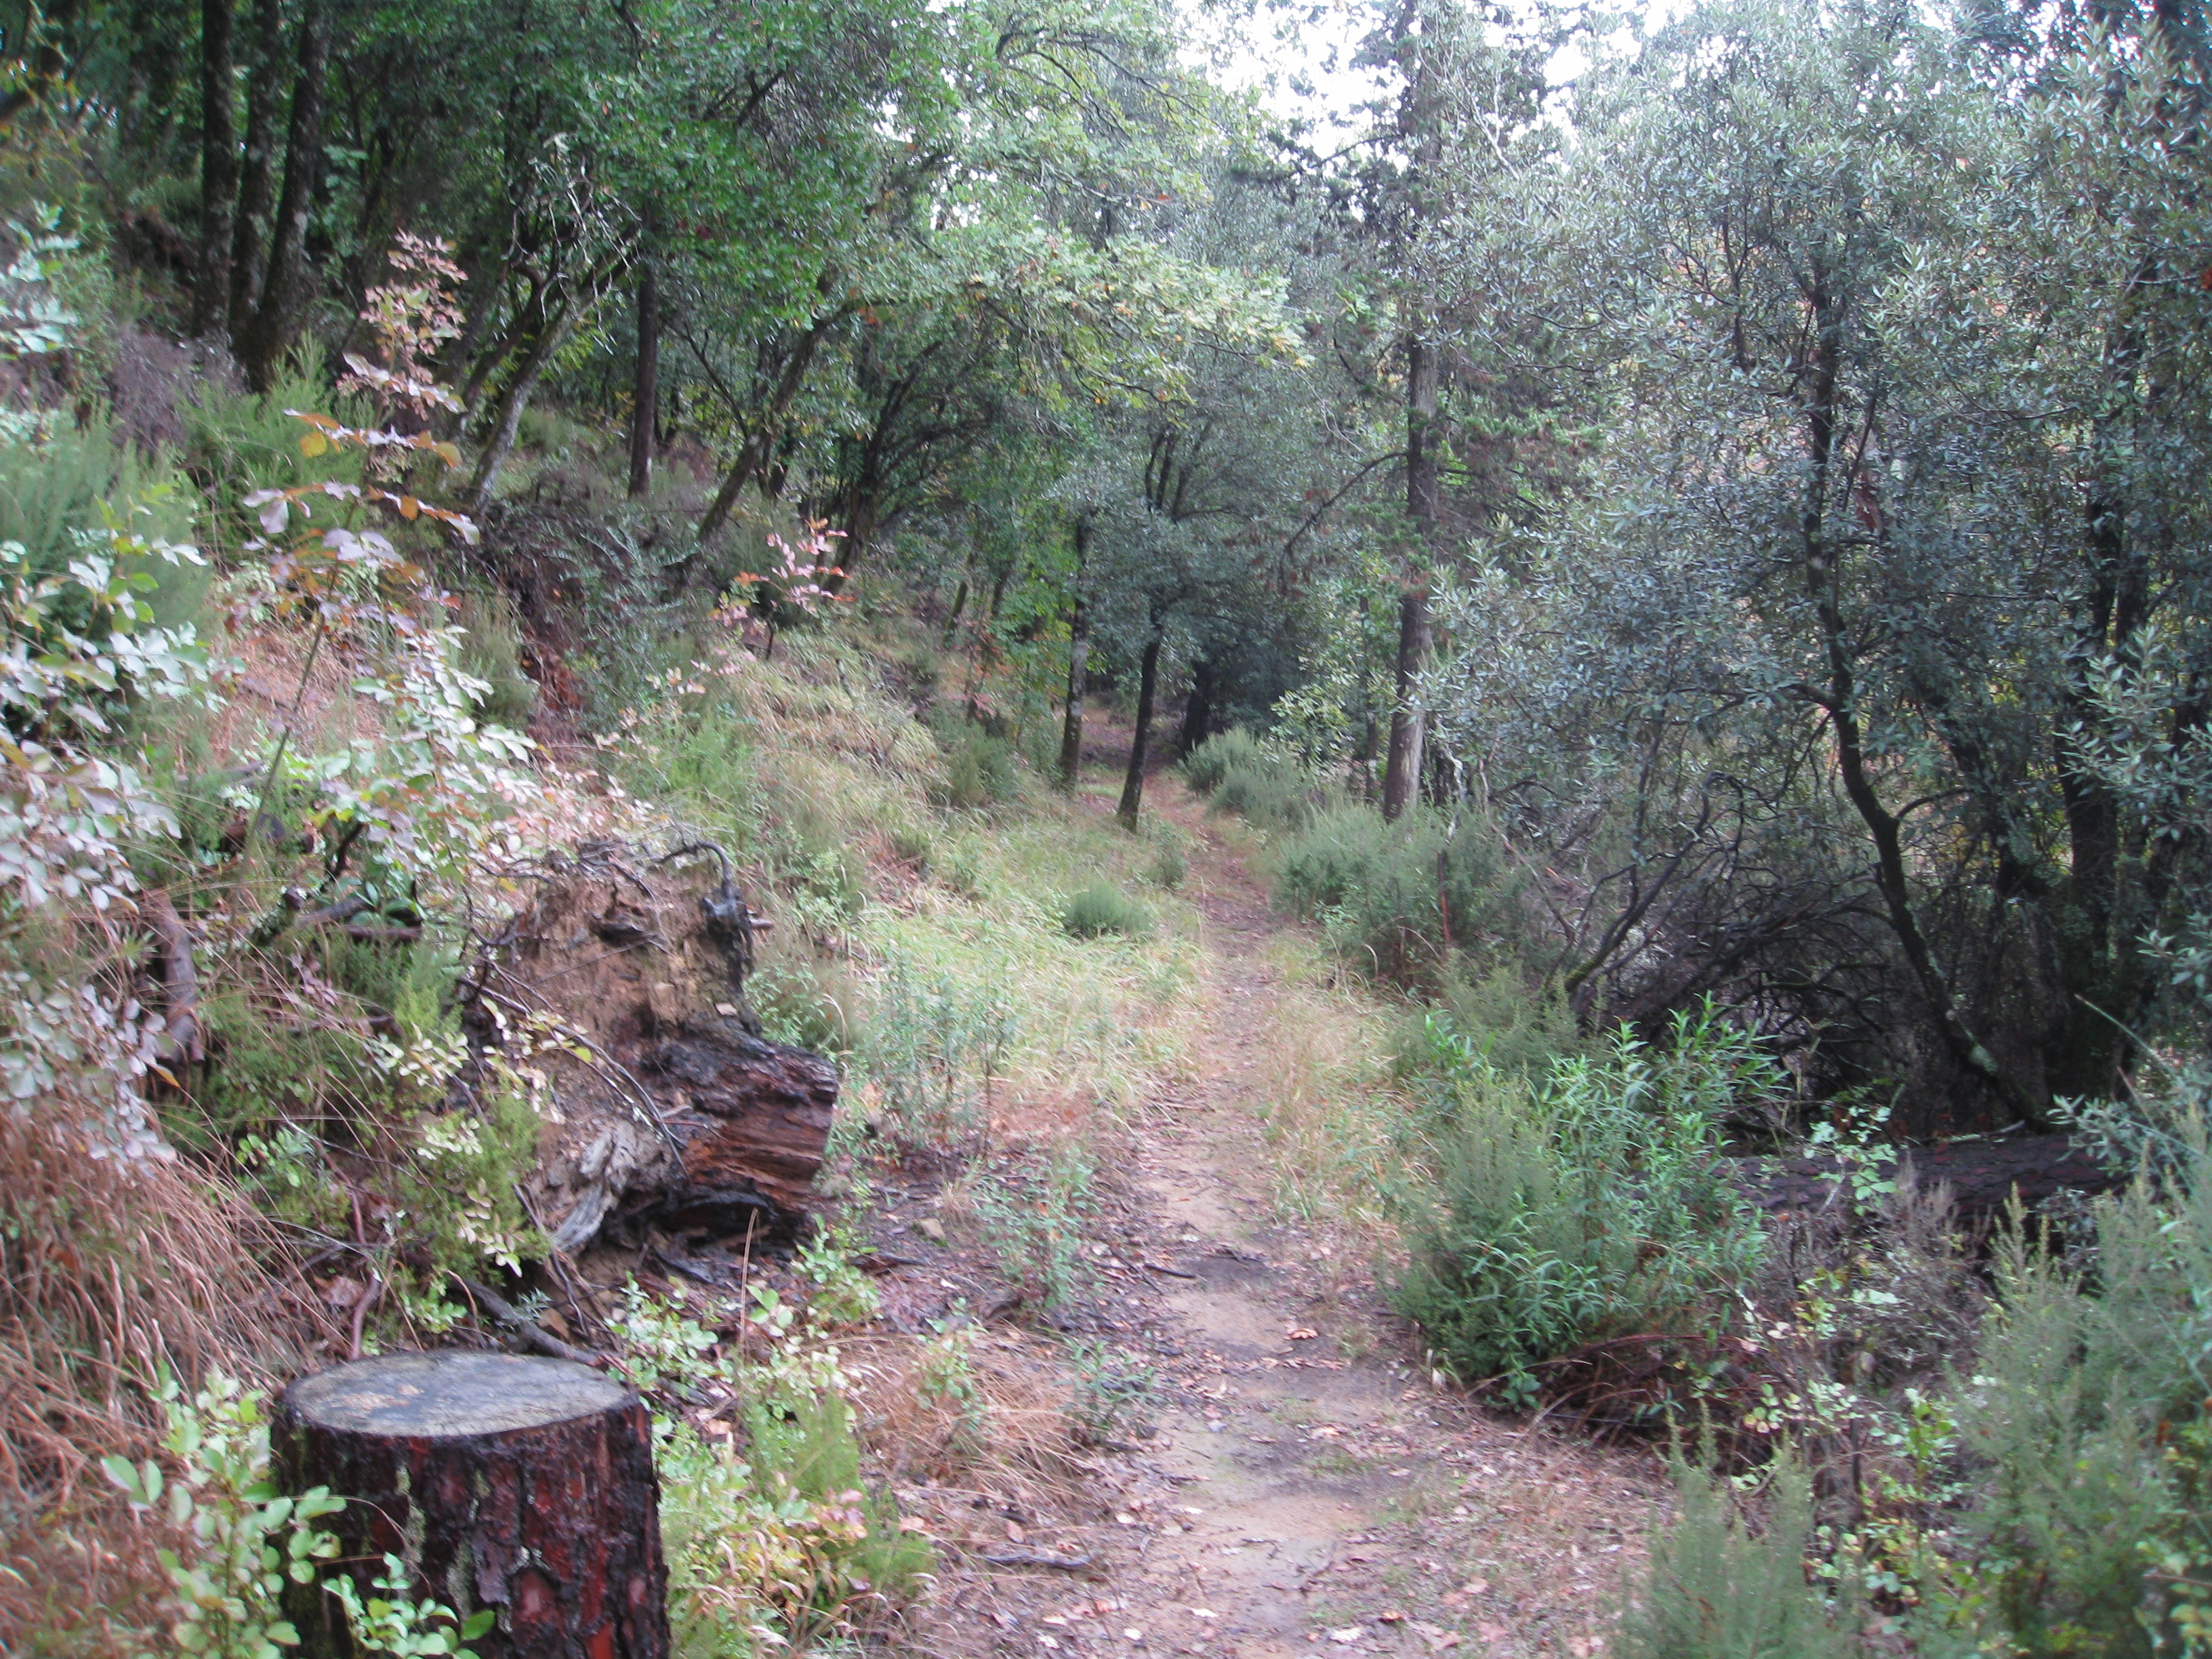 Hiking in Italy is surprisingly similar to Southern California trails. We have the same weeds.